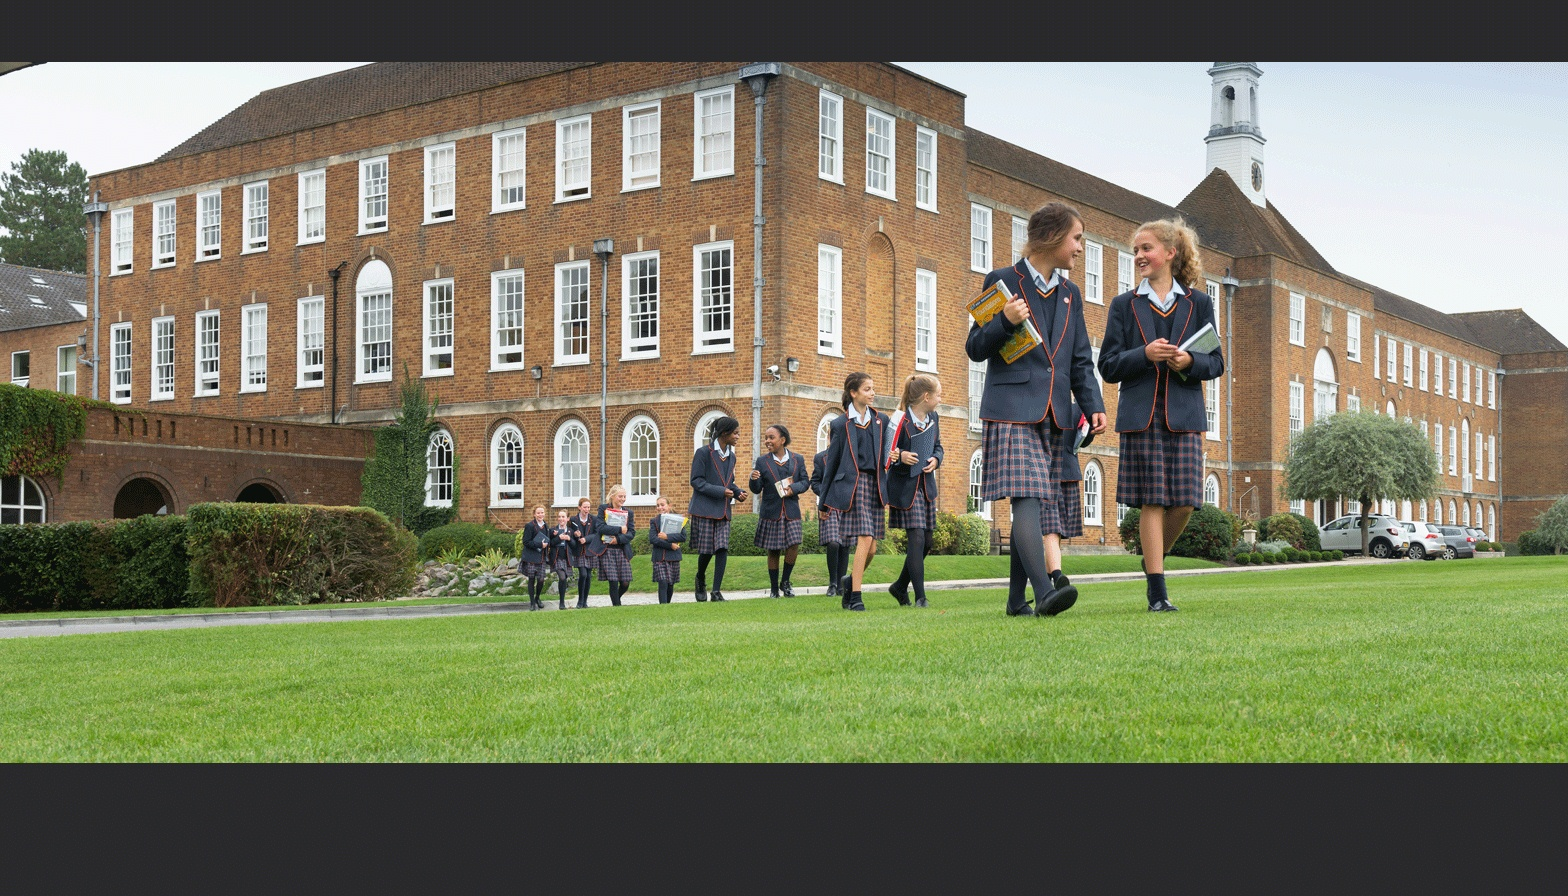 """analysis of the boarding school This book is an analysis of the trauma of the """"privileged"""" child sent to boarding school at a young age innovative and challenging it offers a new understanding of a long-established british and colonial tradition."""